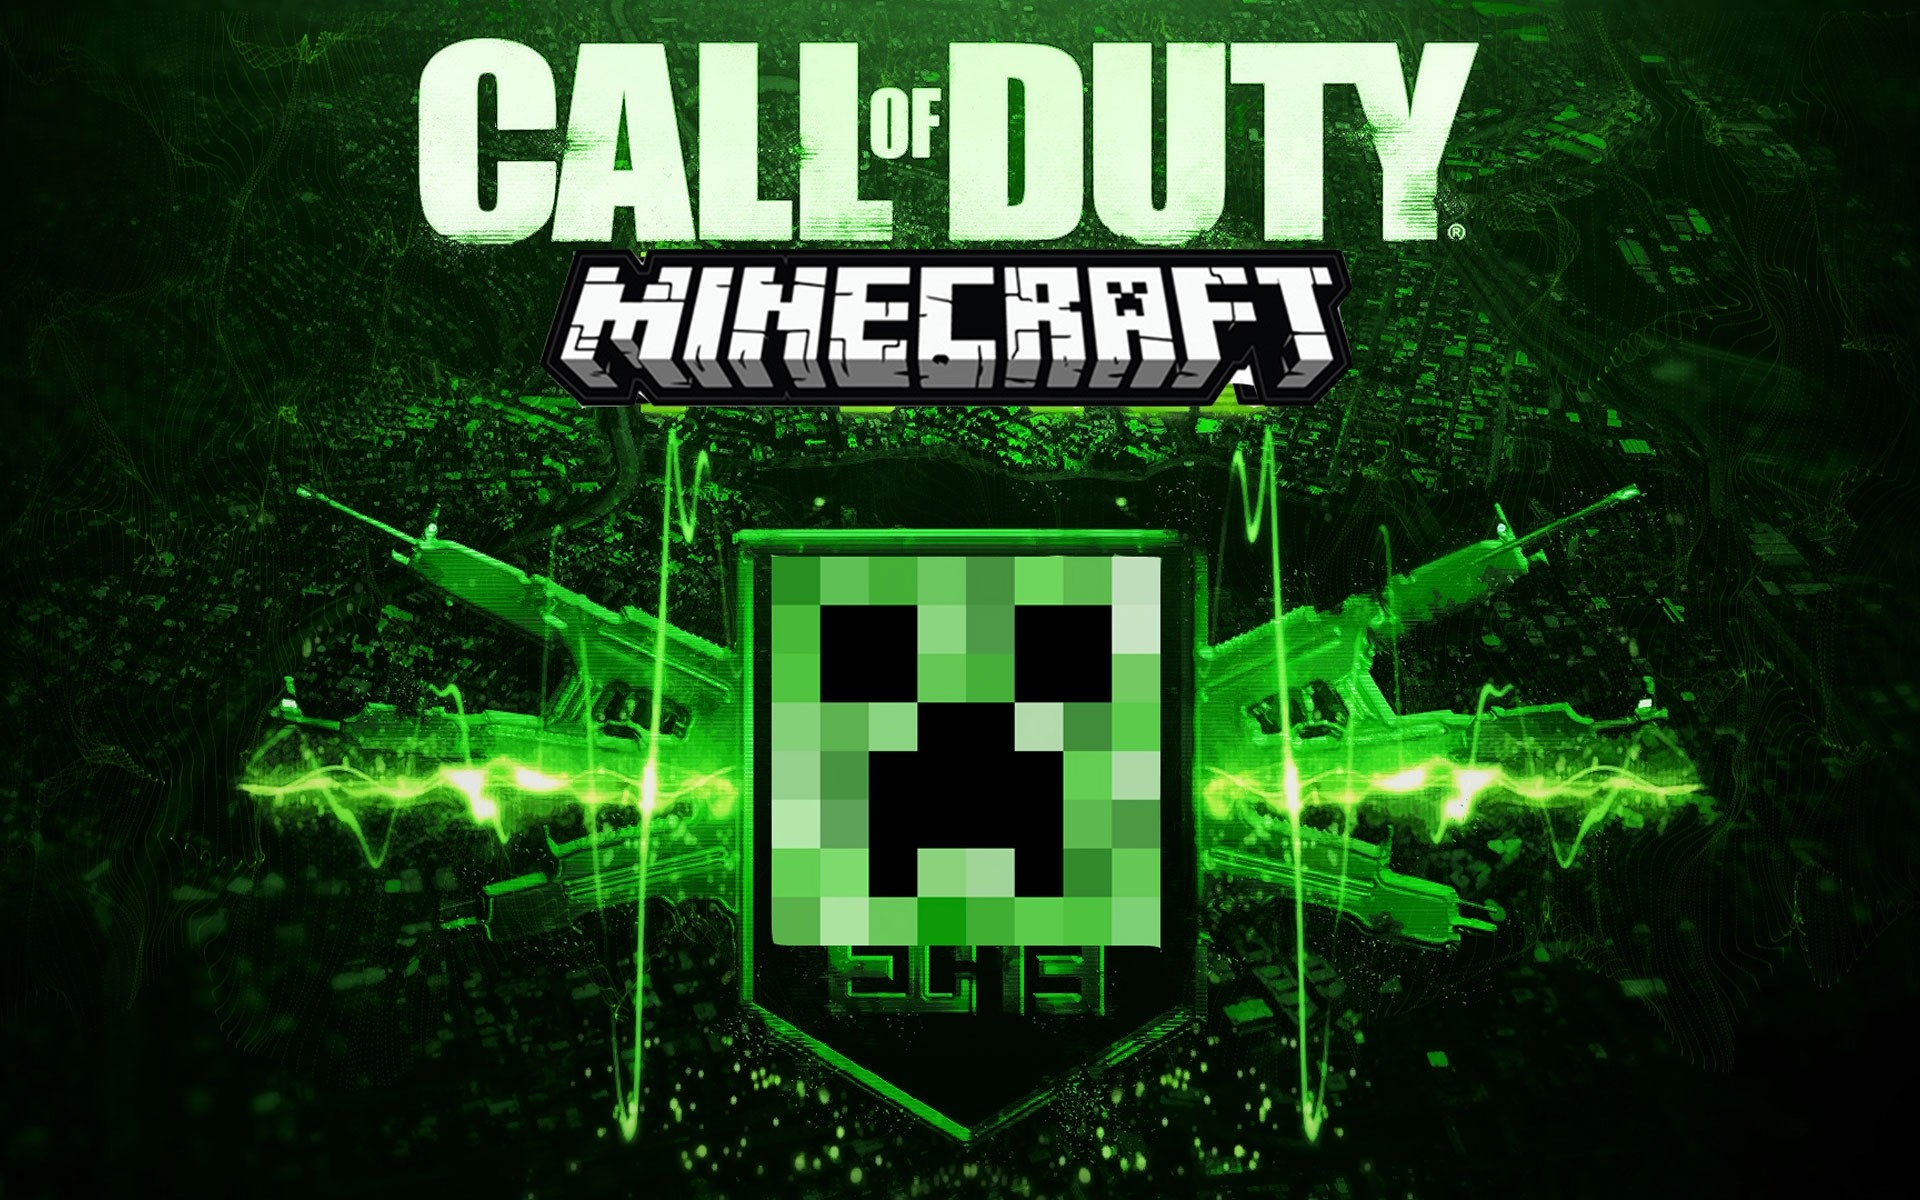 Cool Minecraft Wallpaper 1